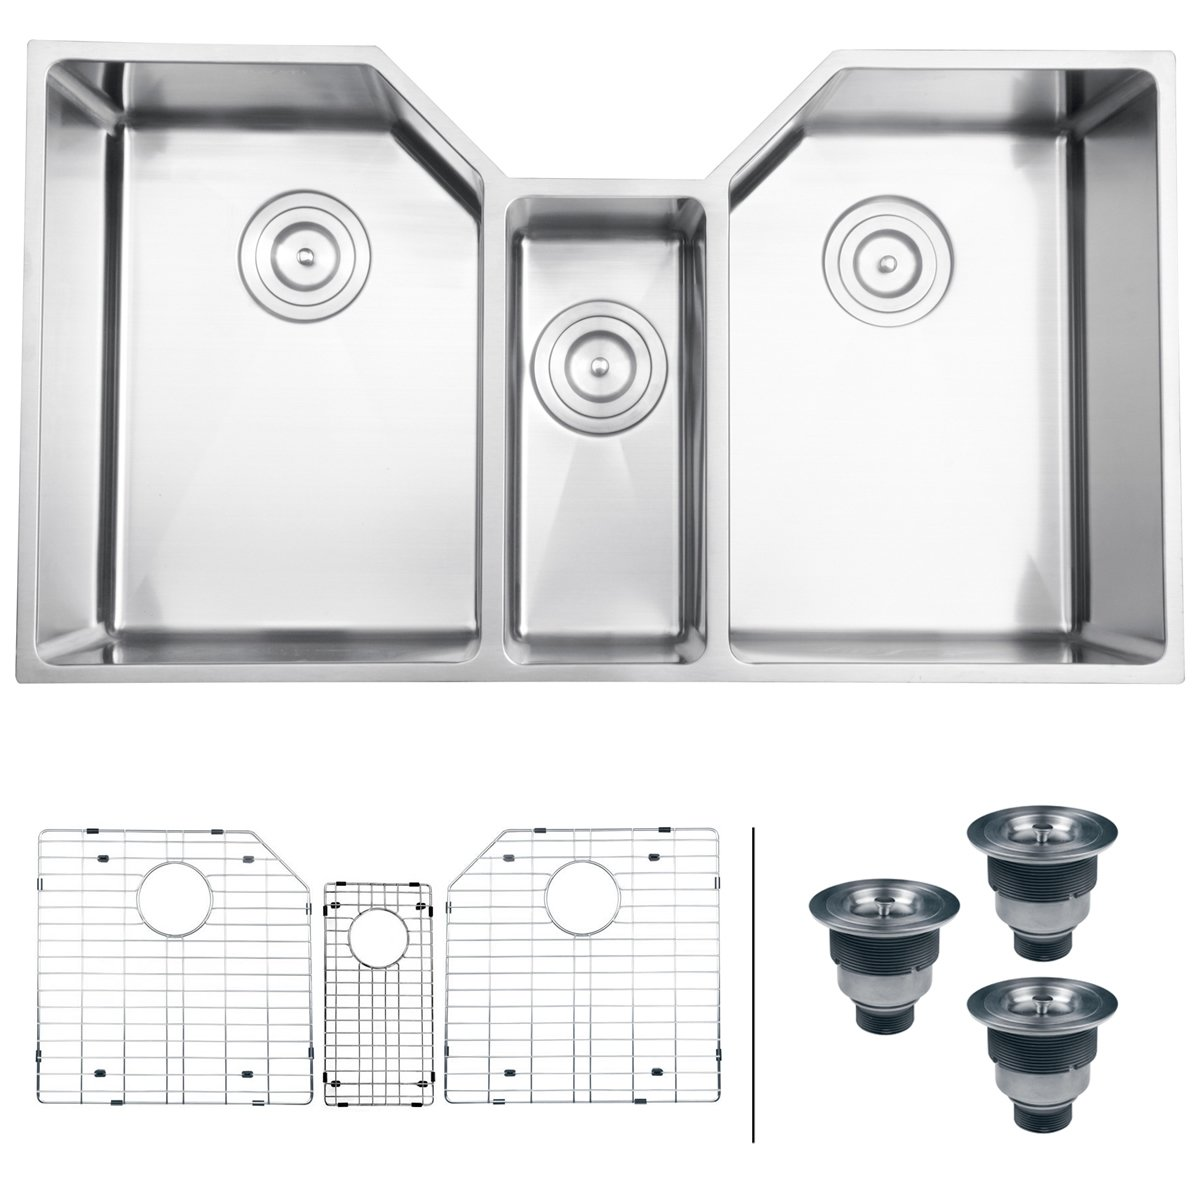 Triple Bowl Kitchen Sinks Ruvati rvh8500 undermount 16 gauge 35 kitchen sink triple bowl ruvati rvh8500 undermount 16 gauge 35 kitchen sink triple bowl stainless steel double bowl sinks amazon workwithnaturefo